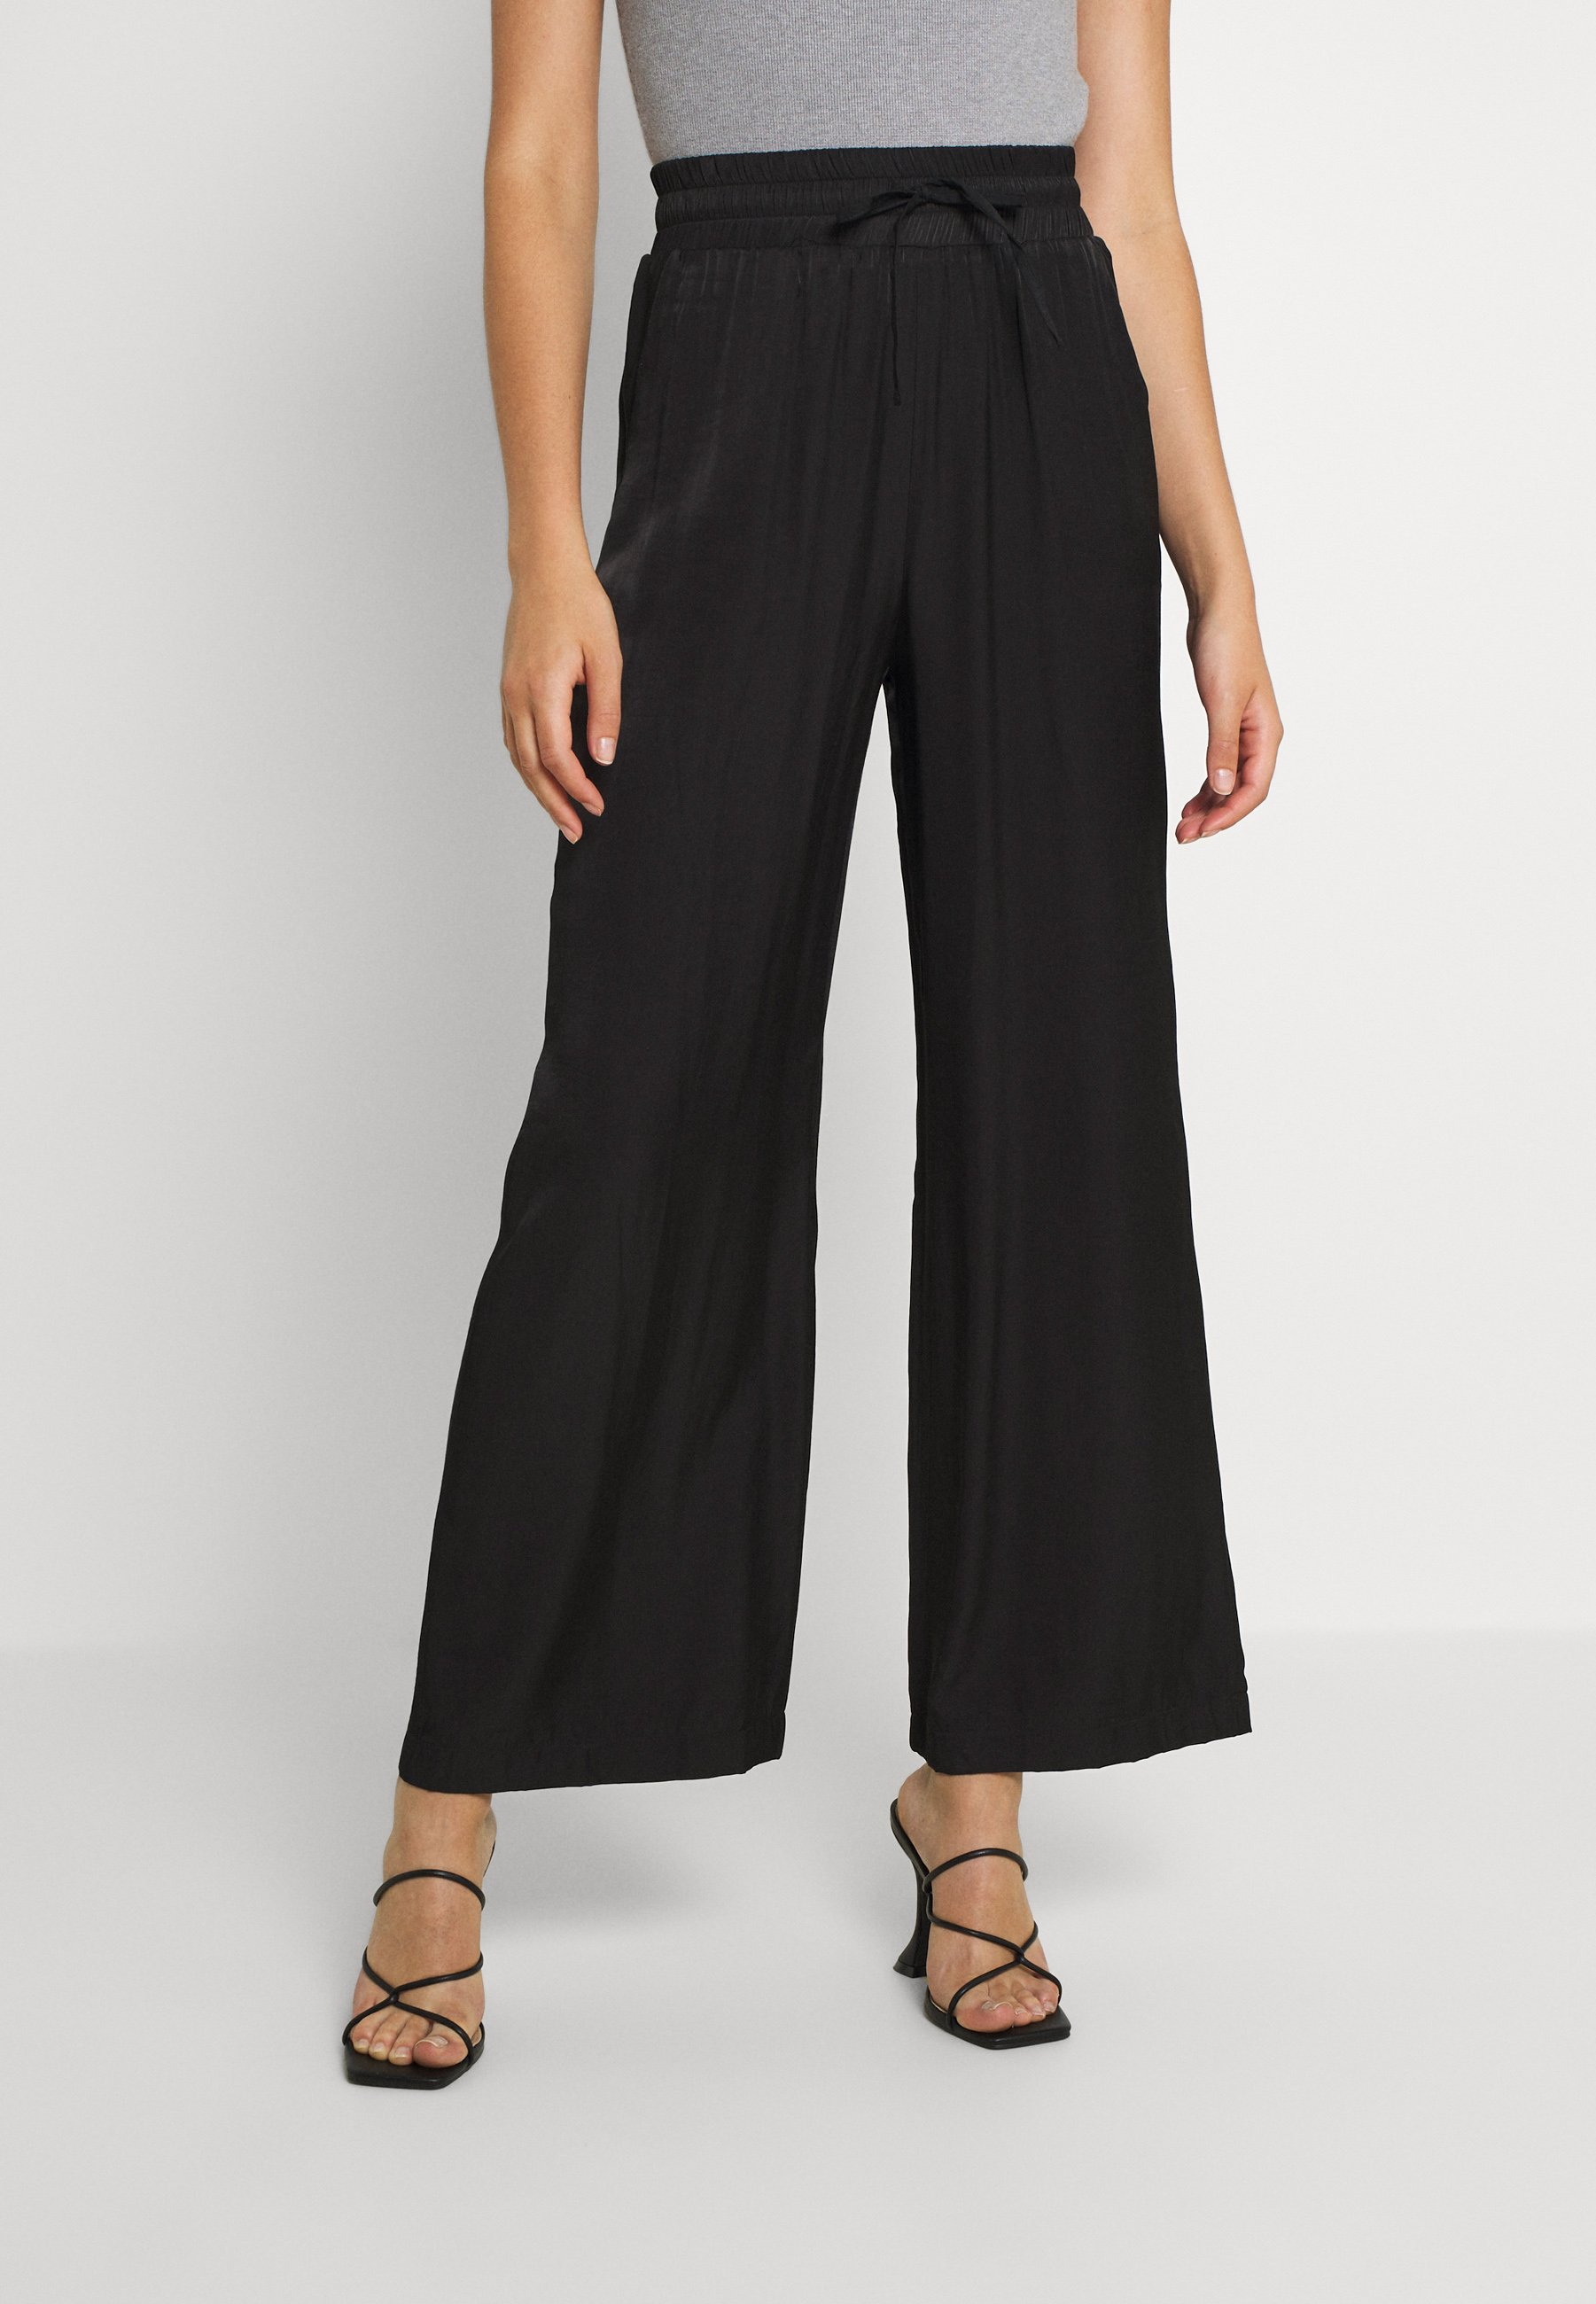 Mujer FOSTER HIGH WAIST TROUSERS - Pantalones